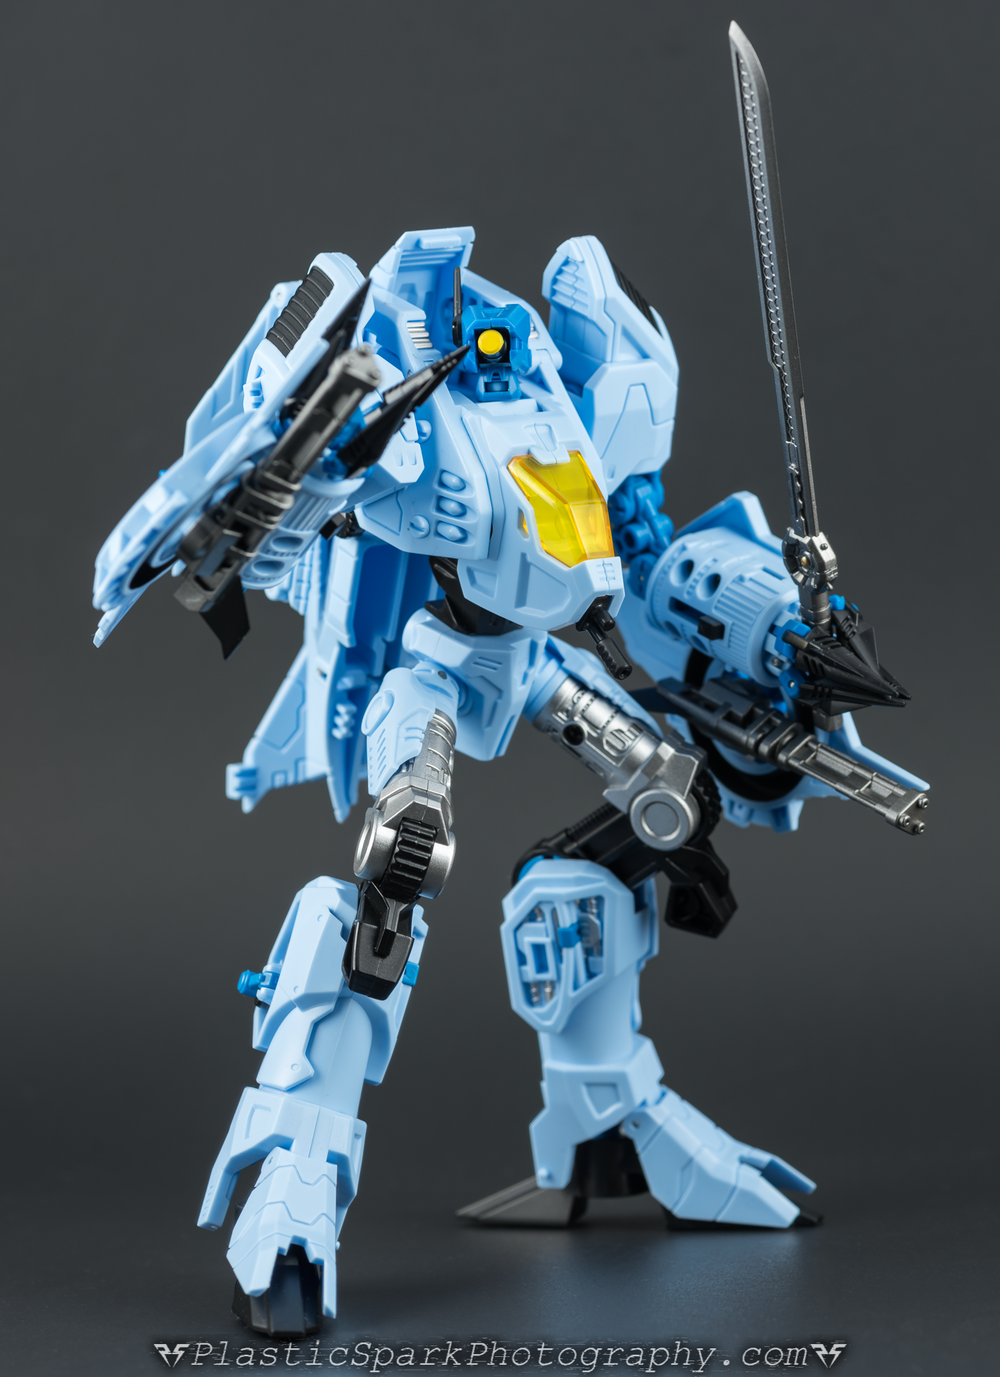 Mastermind-Creations-R-24-Turben-(32-of-34).png